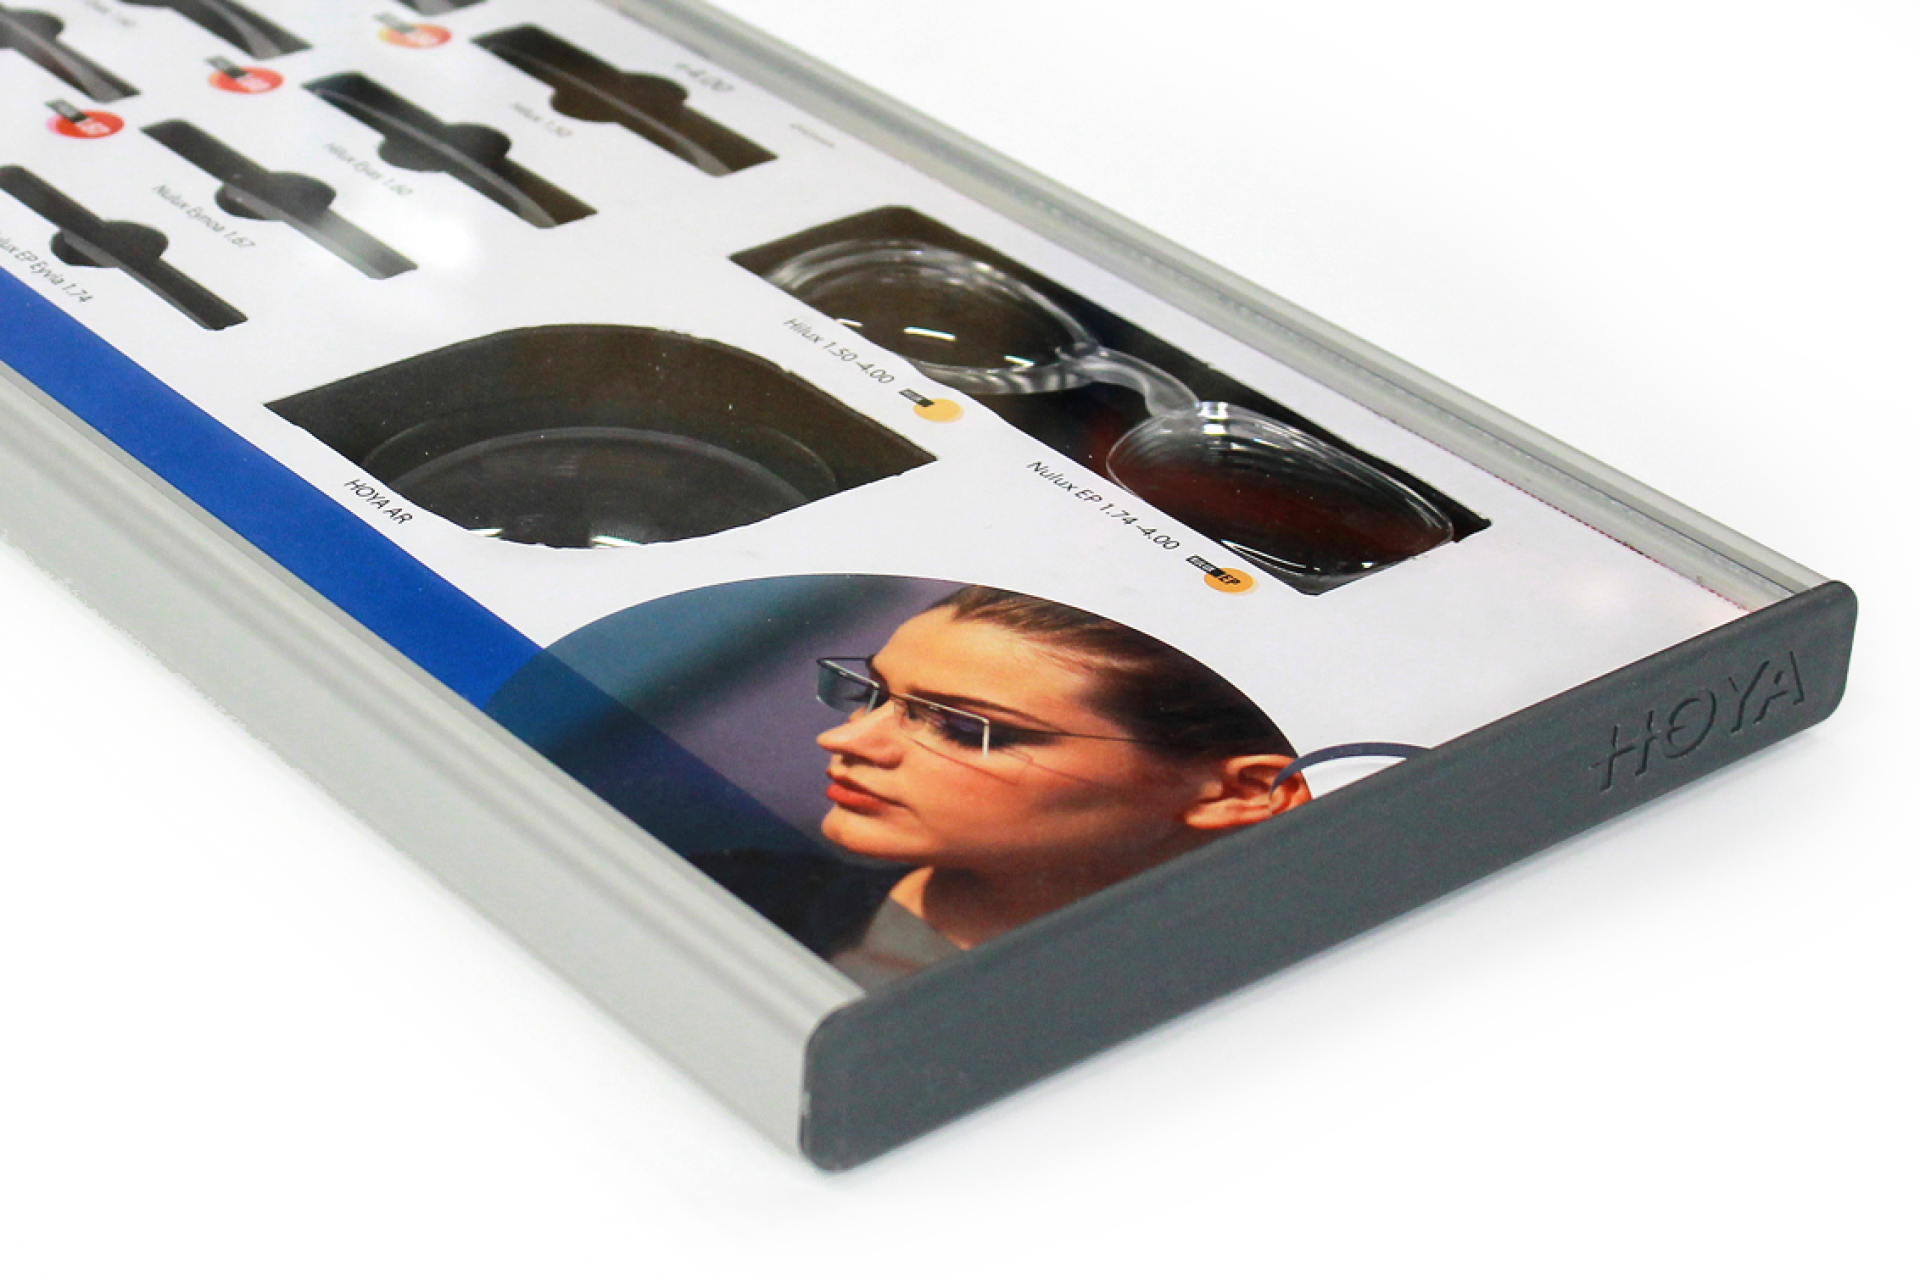 HOYA - Vision Care Solutions